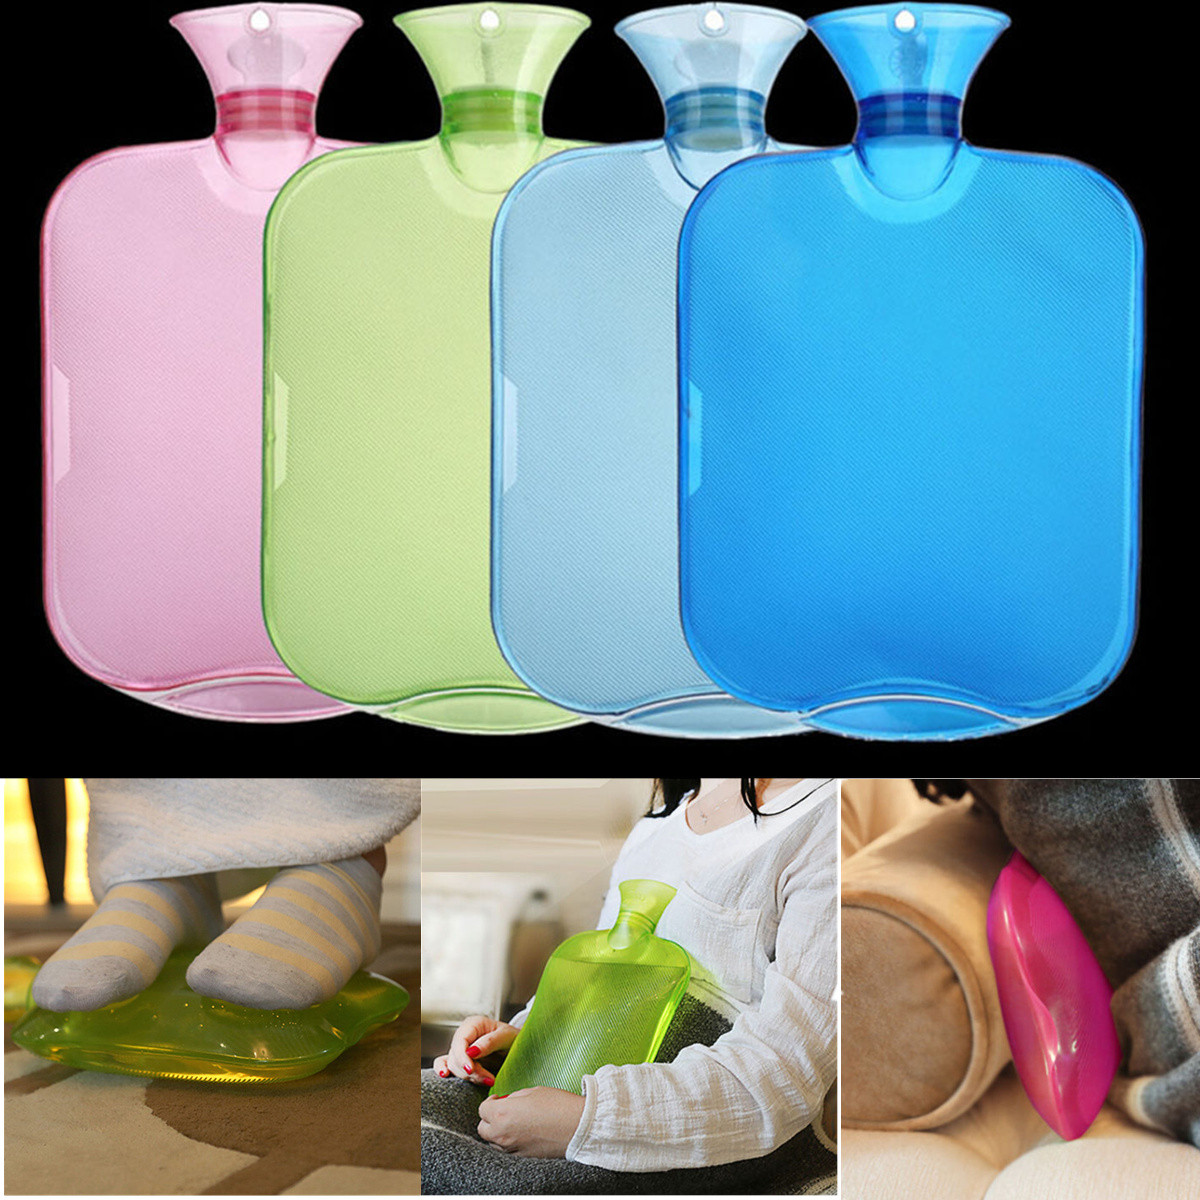 Buy 2000ml PVC Rubber Hot Water Bottle Warm Relax Pain Sports Injuries Relief Heat Cold Therapy Bag